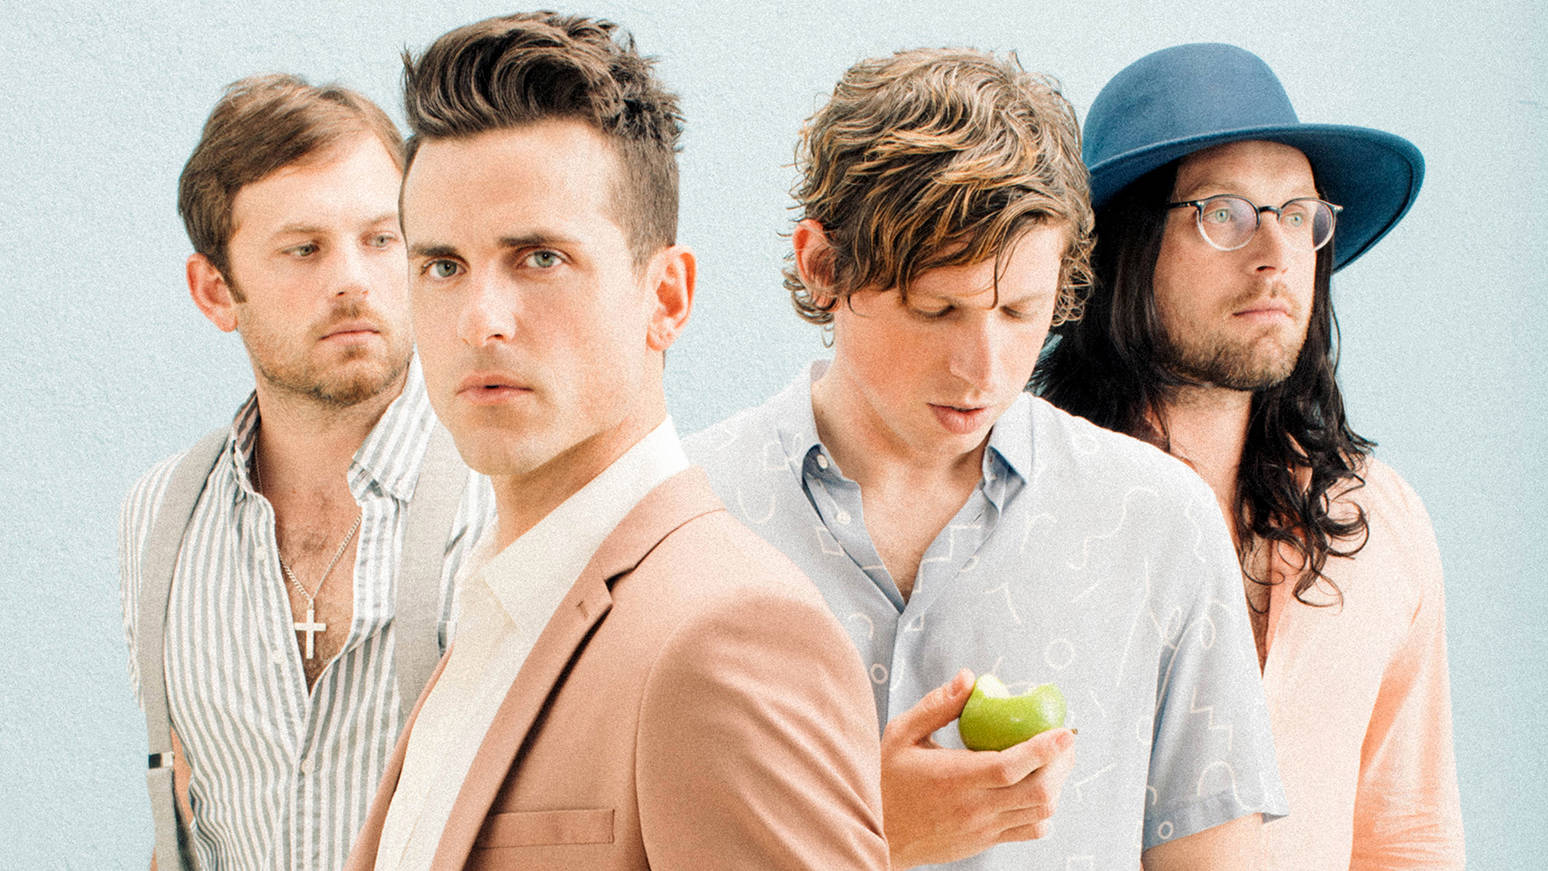 Where did Kings of Leon's band name come from?